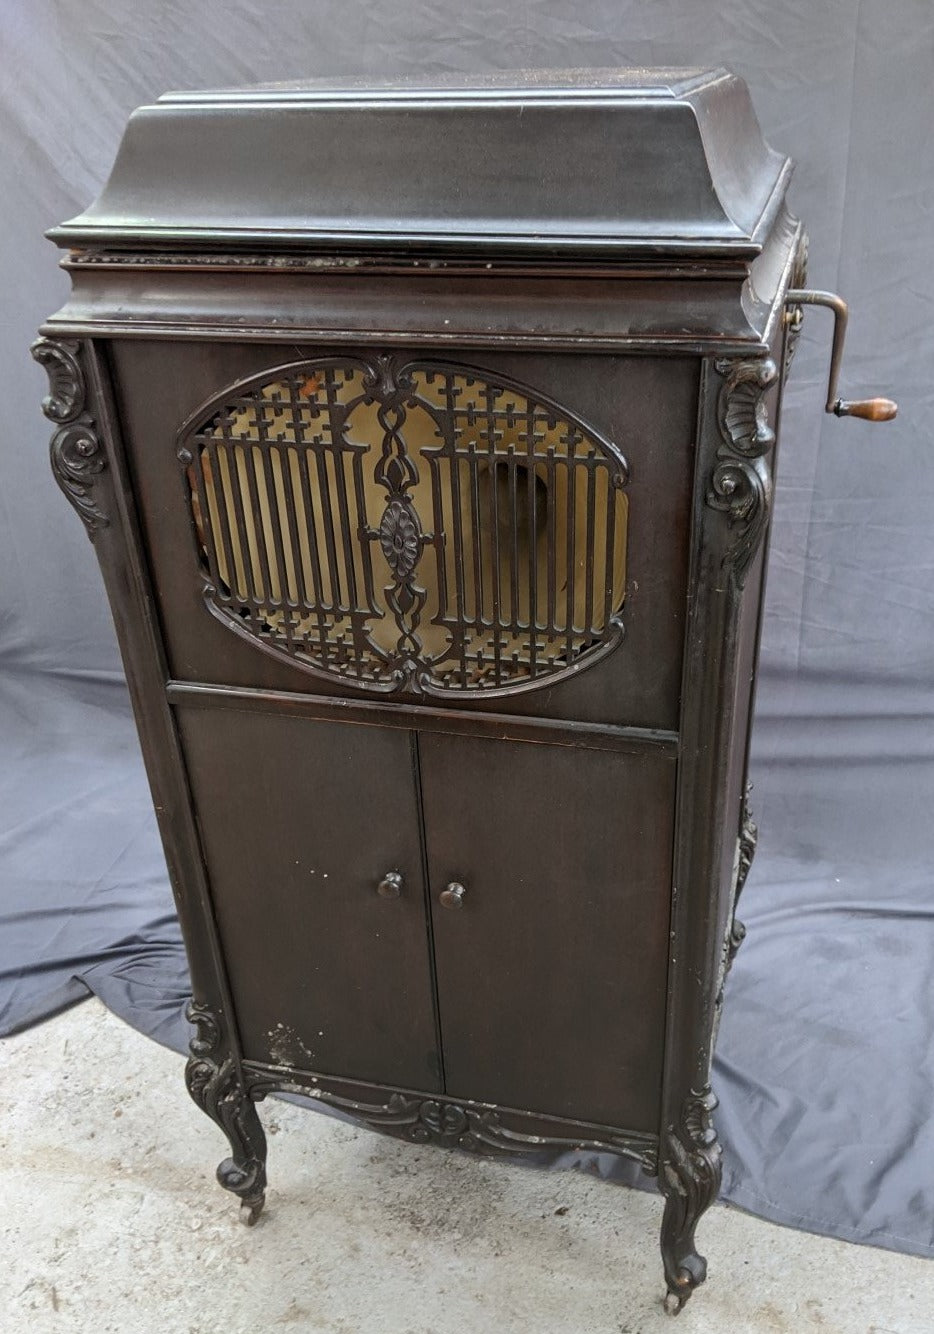 FANCY TURN OF THE CENTURY MAHOGANY VICTROLA IN WORKING ORDER